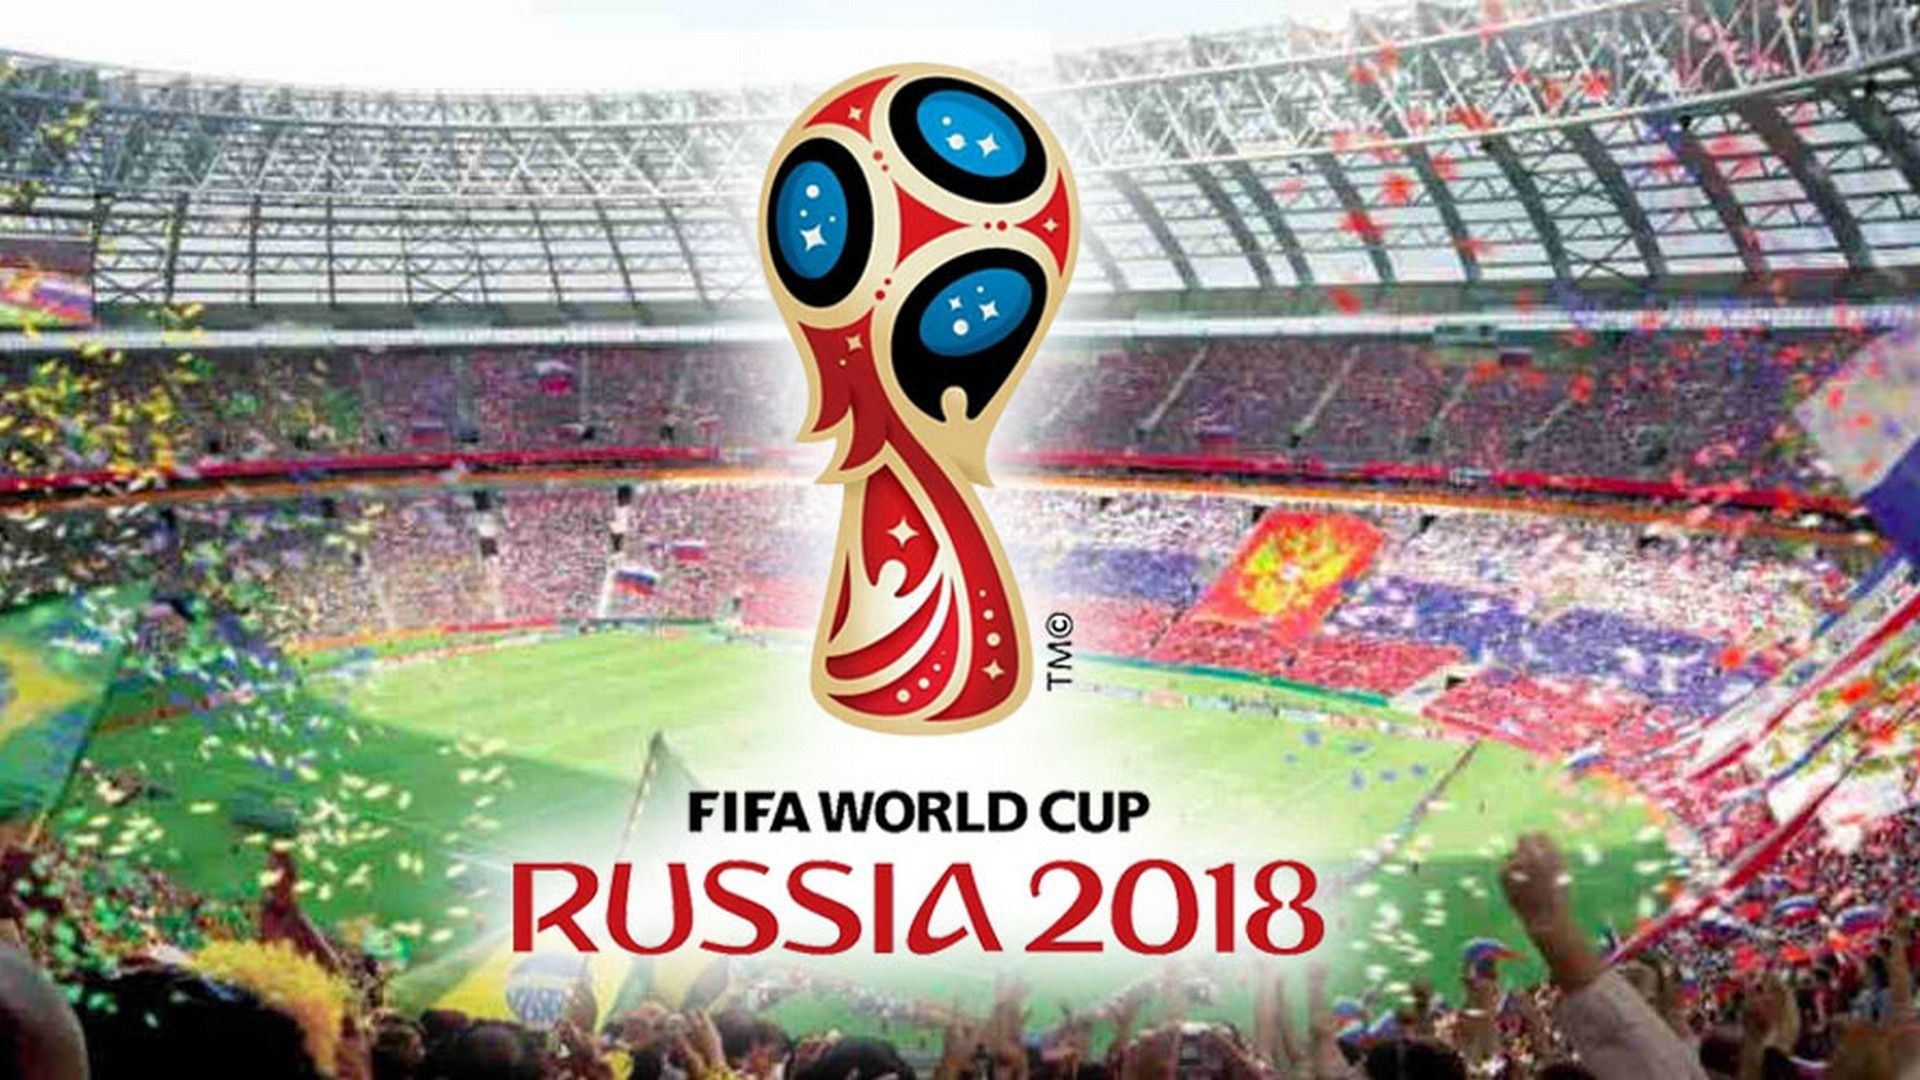 1920x1080 - FIFA World Cup 2018 Wallpapers 19